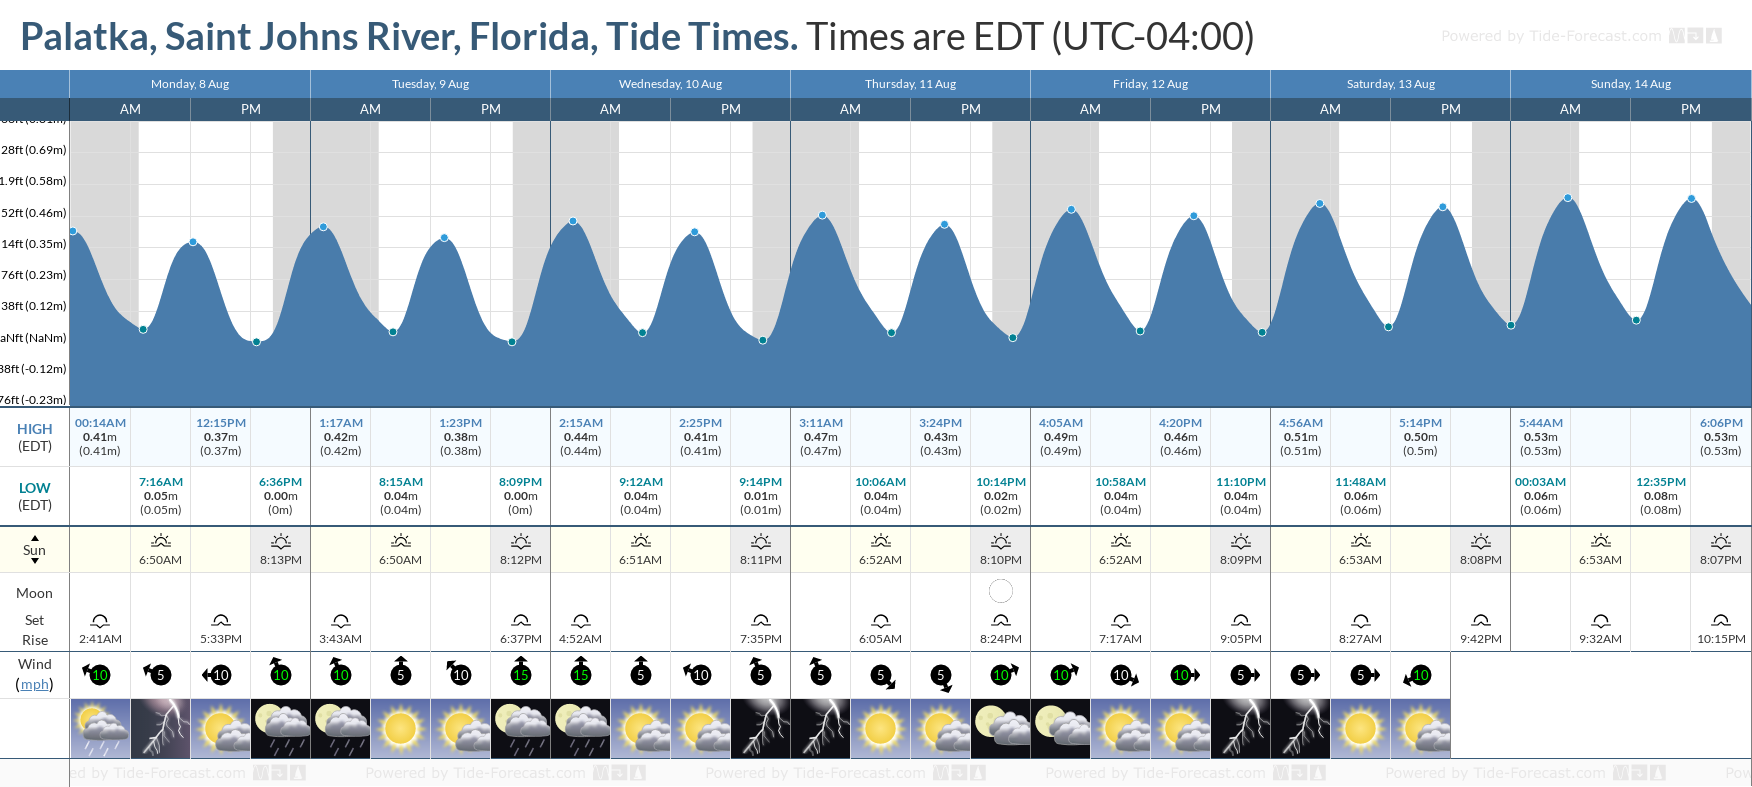 Palatka, Saint Johns River, Florida Tide Chart including high and low tide tide times for the next 7 days